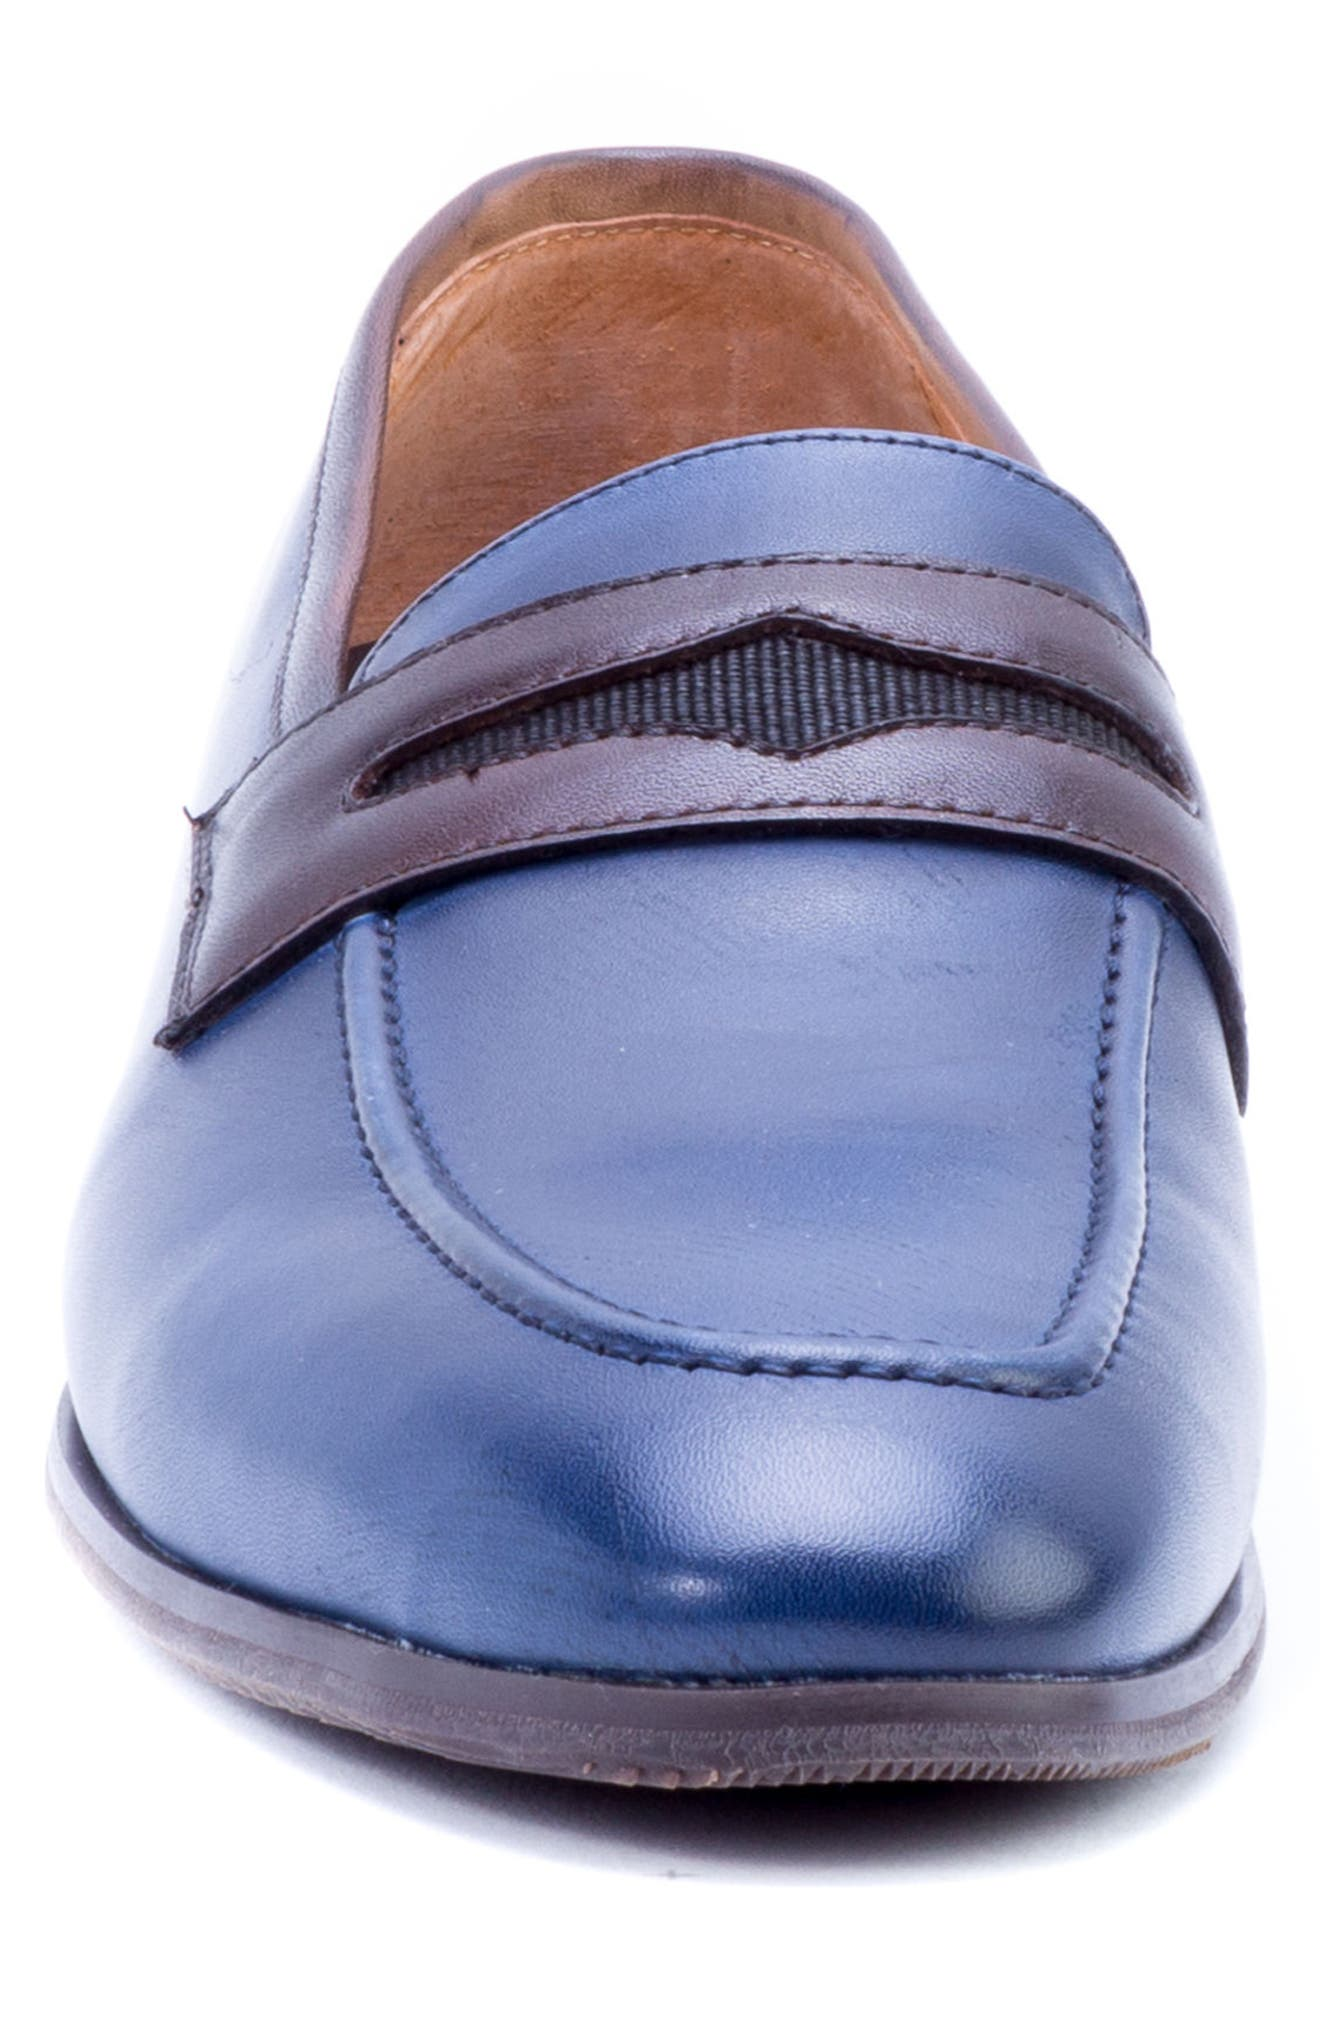 Apron Toe Penny Loafer,                             Alternate thumbnail 4, color,                             Navy Leather